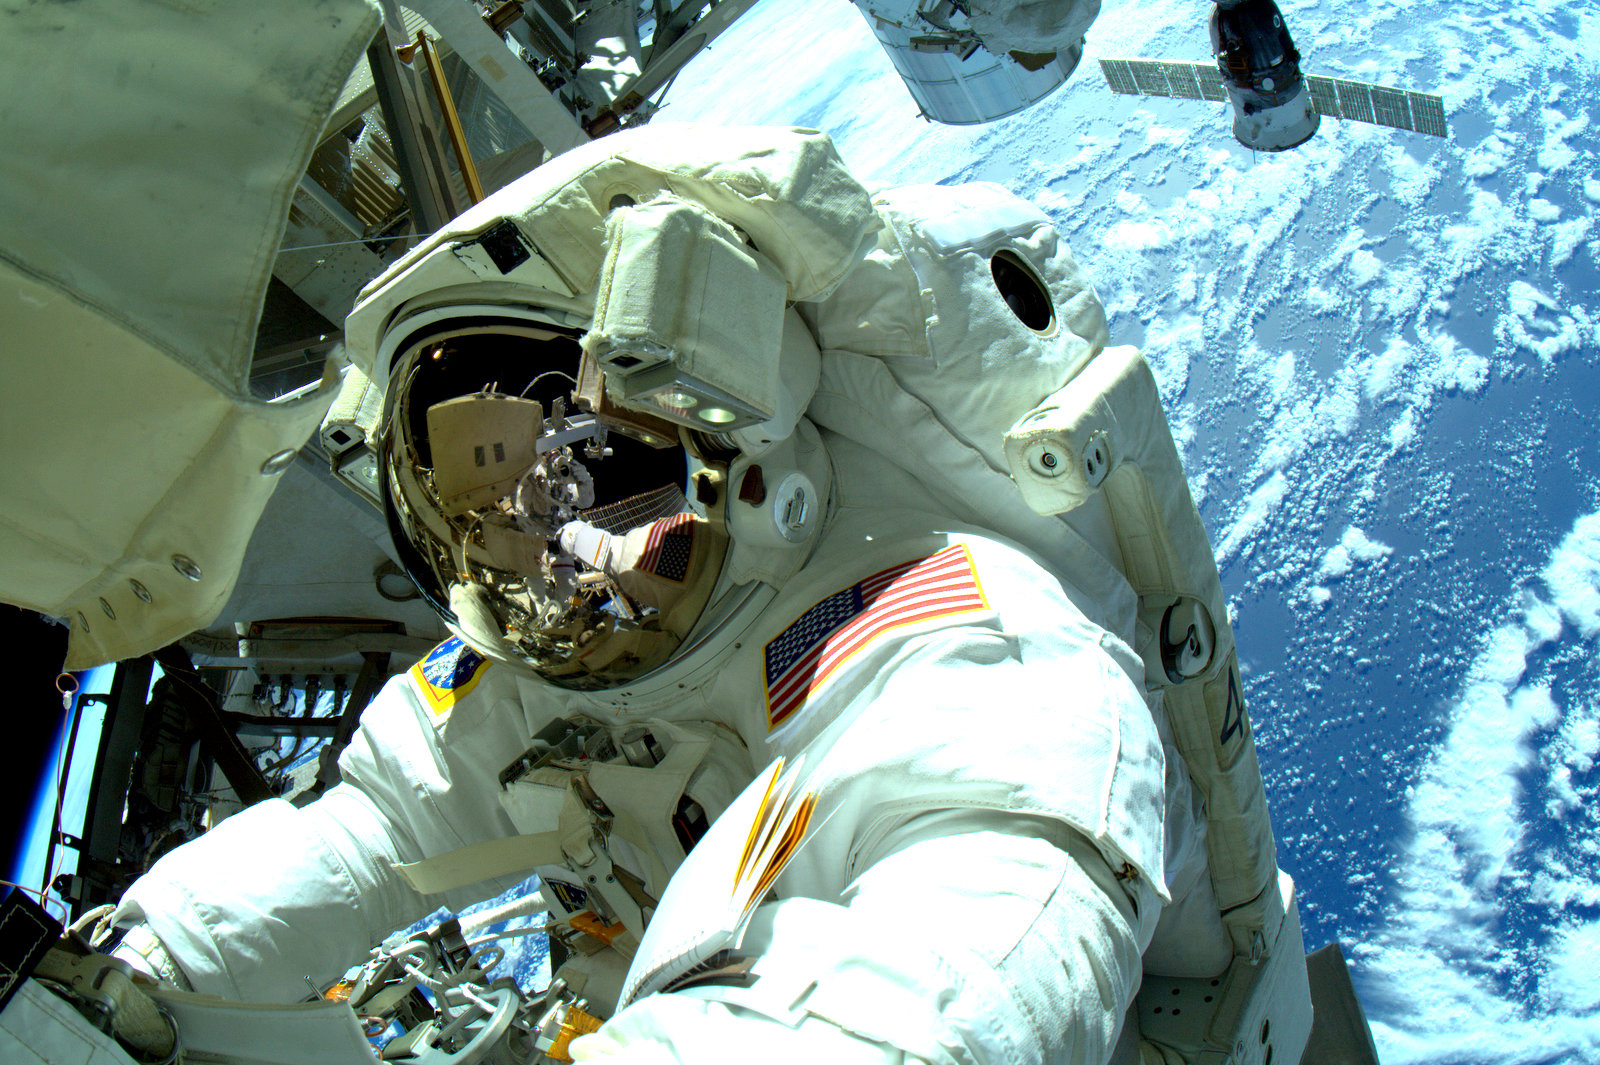 5 Key Findings From 15 Years of the International Space Station